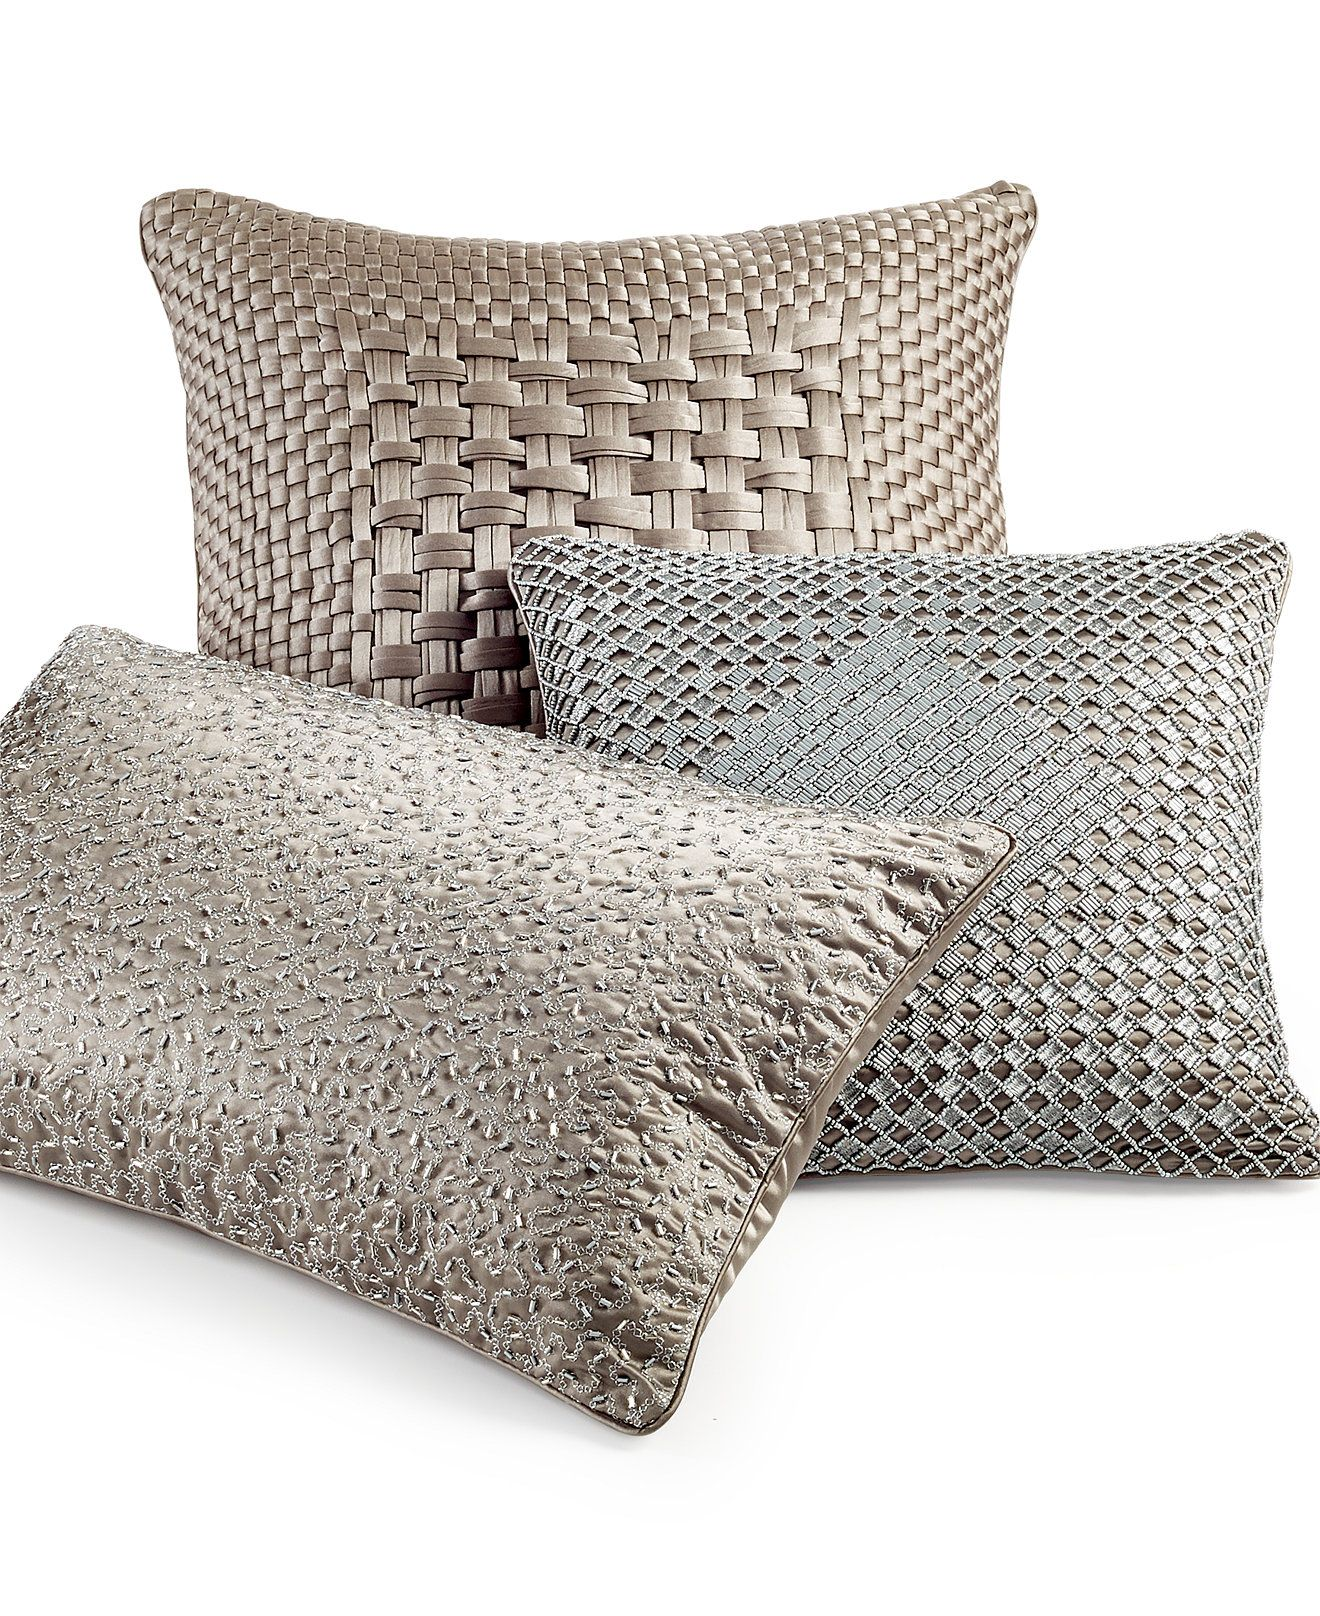 macys sofa pillows barker stonehouse sofas hotel collection dimensions 14 quot x 24 decorative pillow